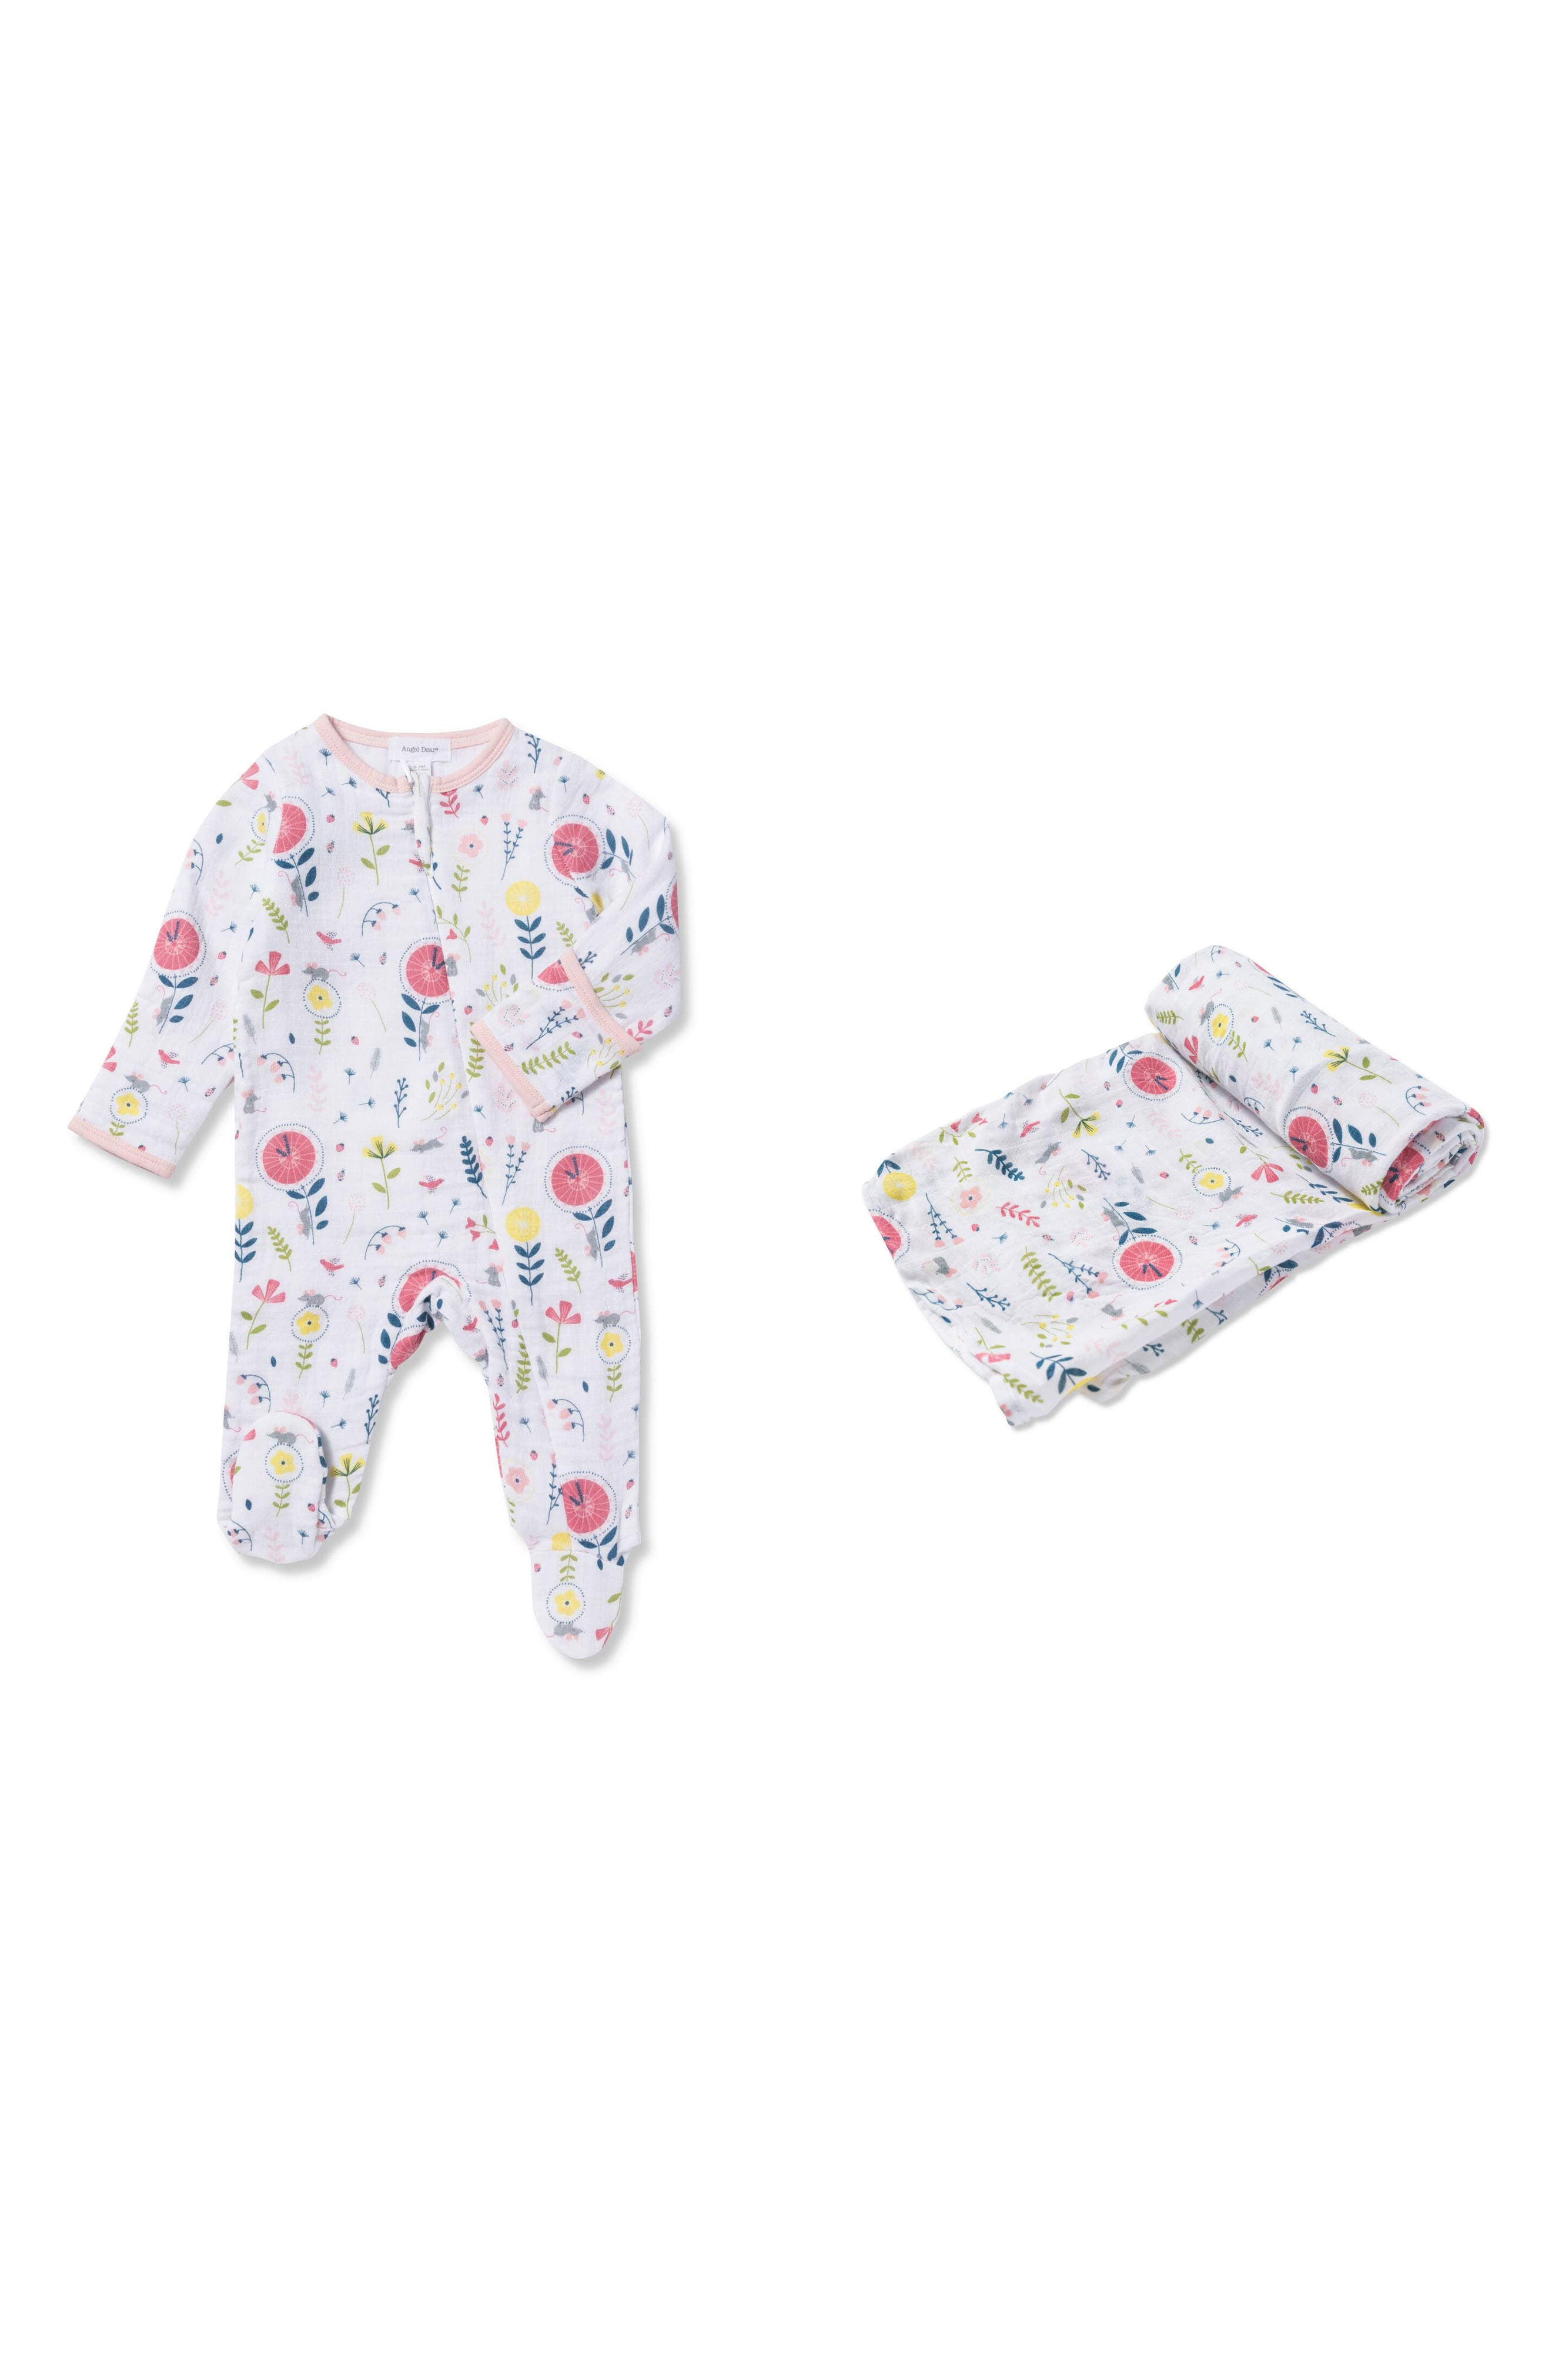 Hickory Dickory Dock Footie & Swaddle Blanket Set,                             Main thumbnail 1, color,                             Multi